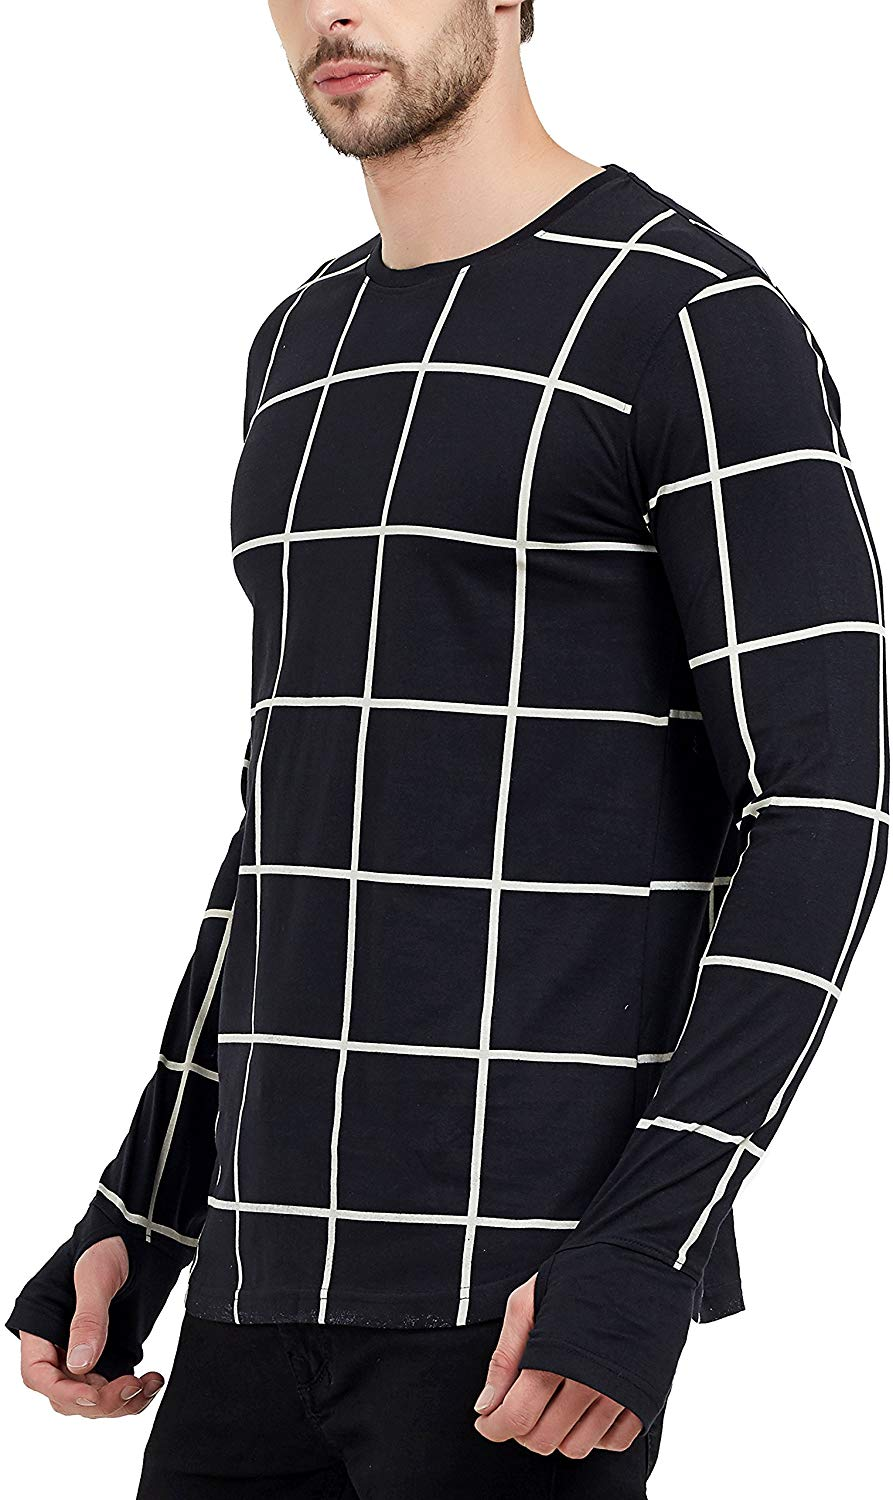 Men's Fullsleeve Round Neck Checkered Thumb Hole Black T-Shirt image 2